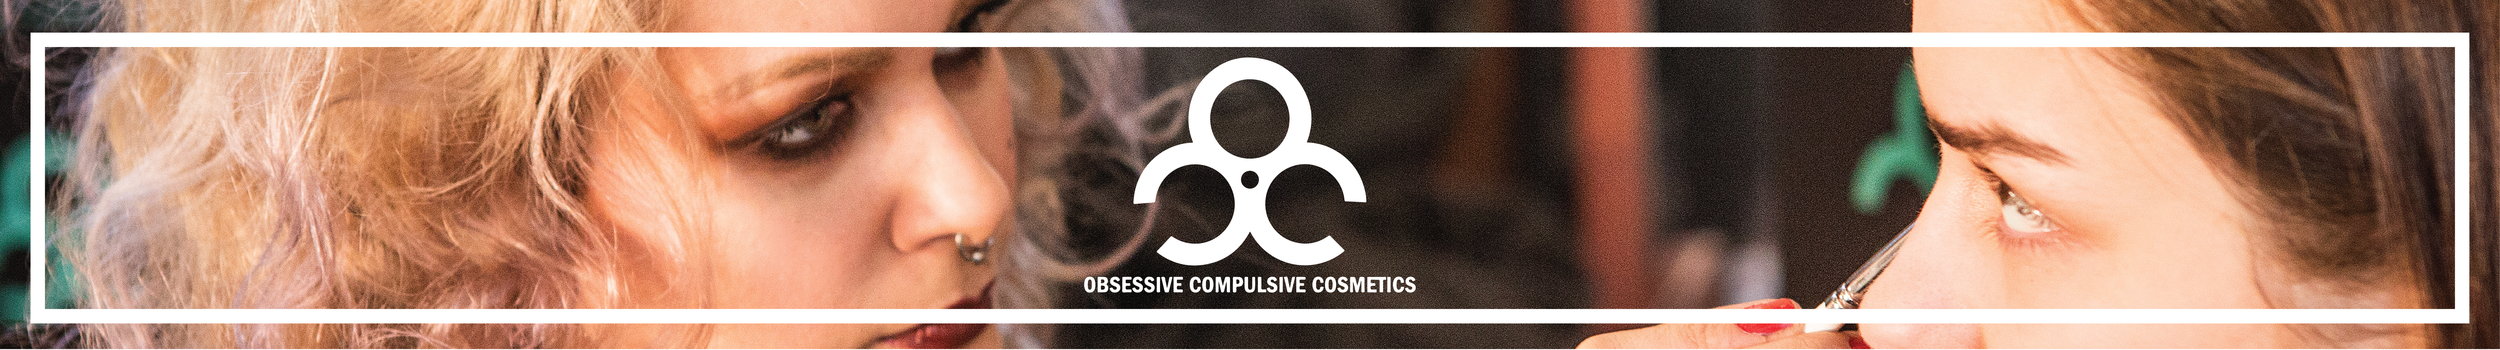 occ_banner.png